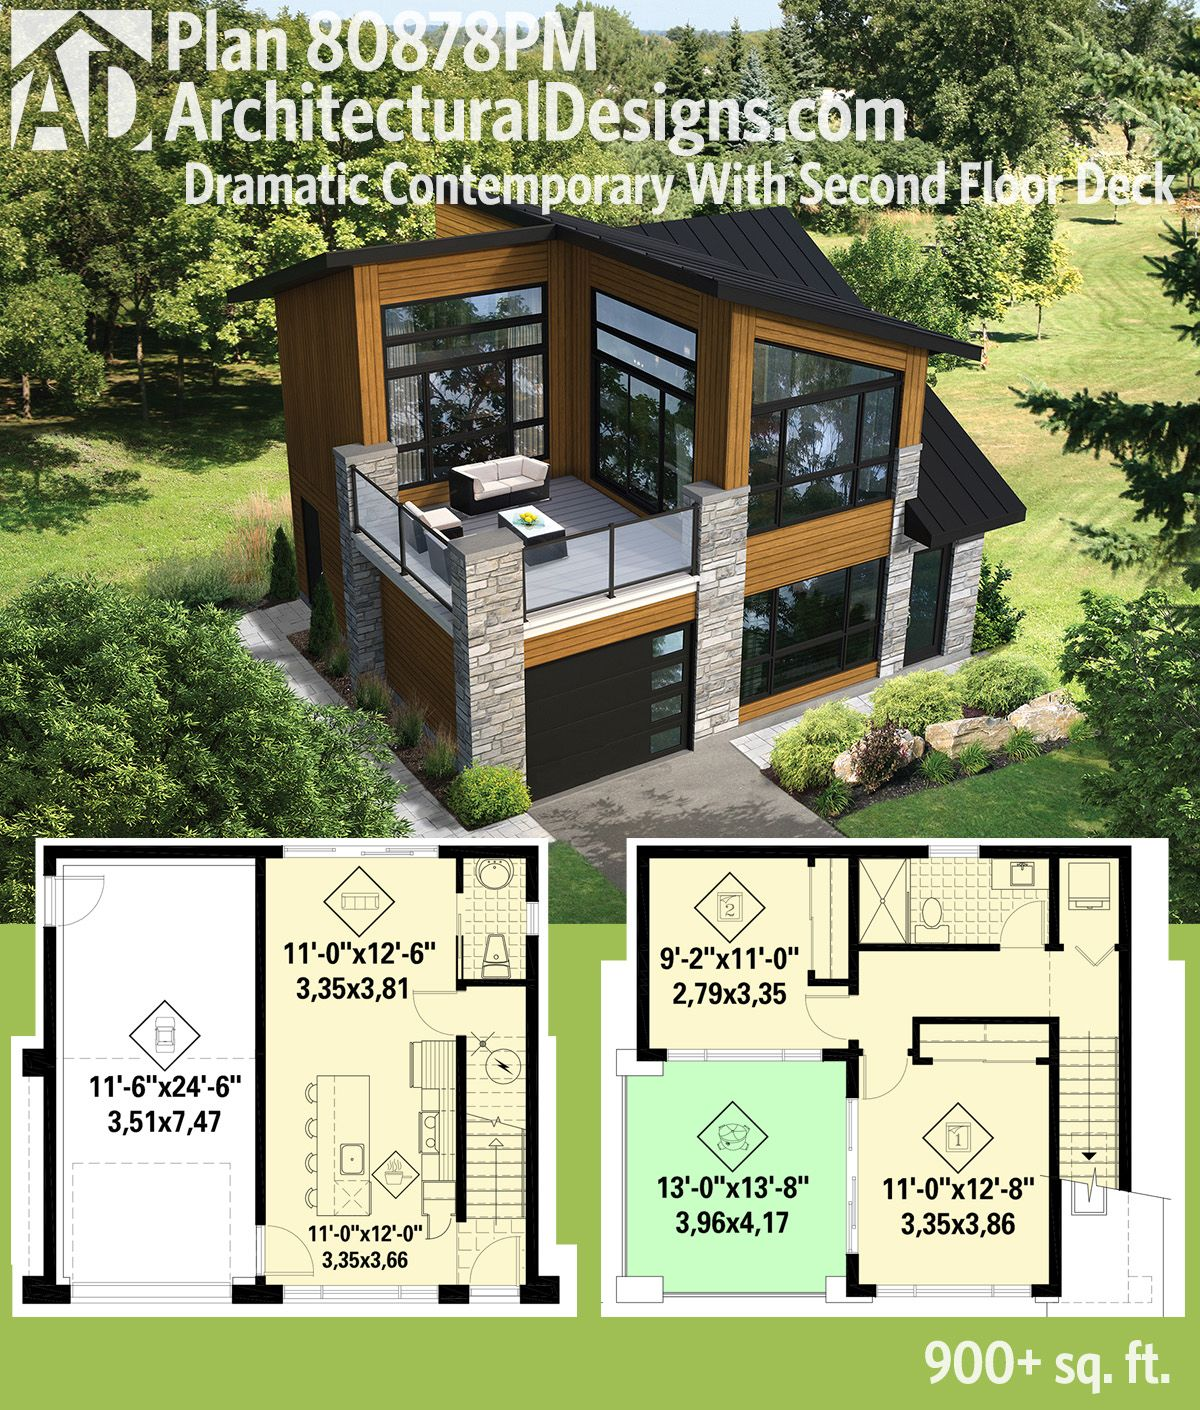 Plan 80878pm dramatic contemporary with second floor deck for Small cottage plans with garage